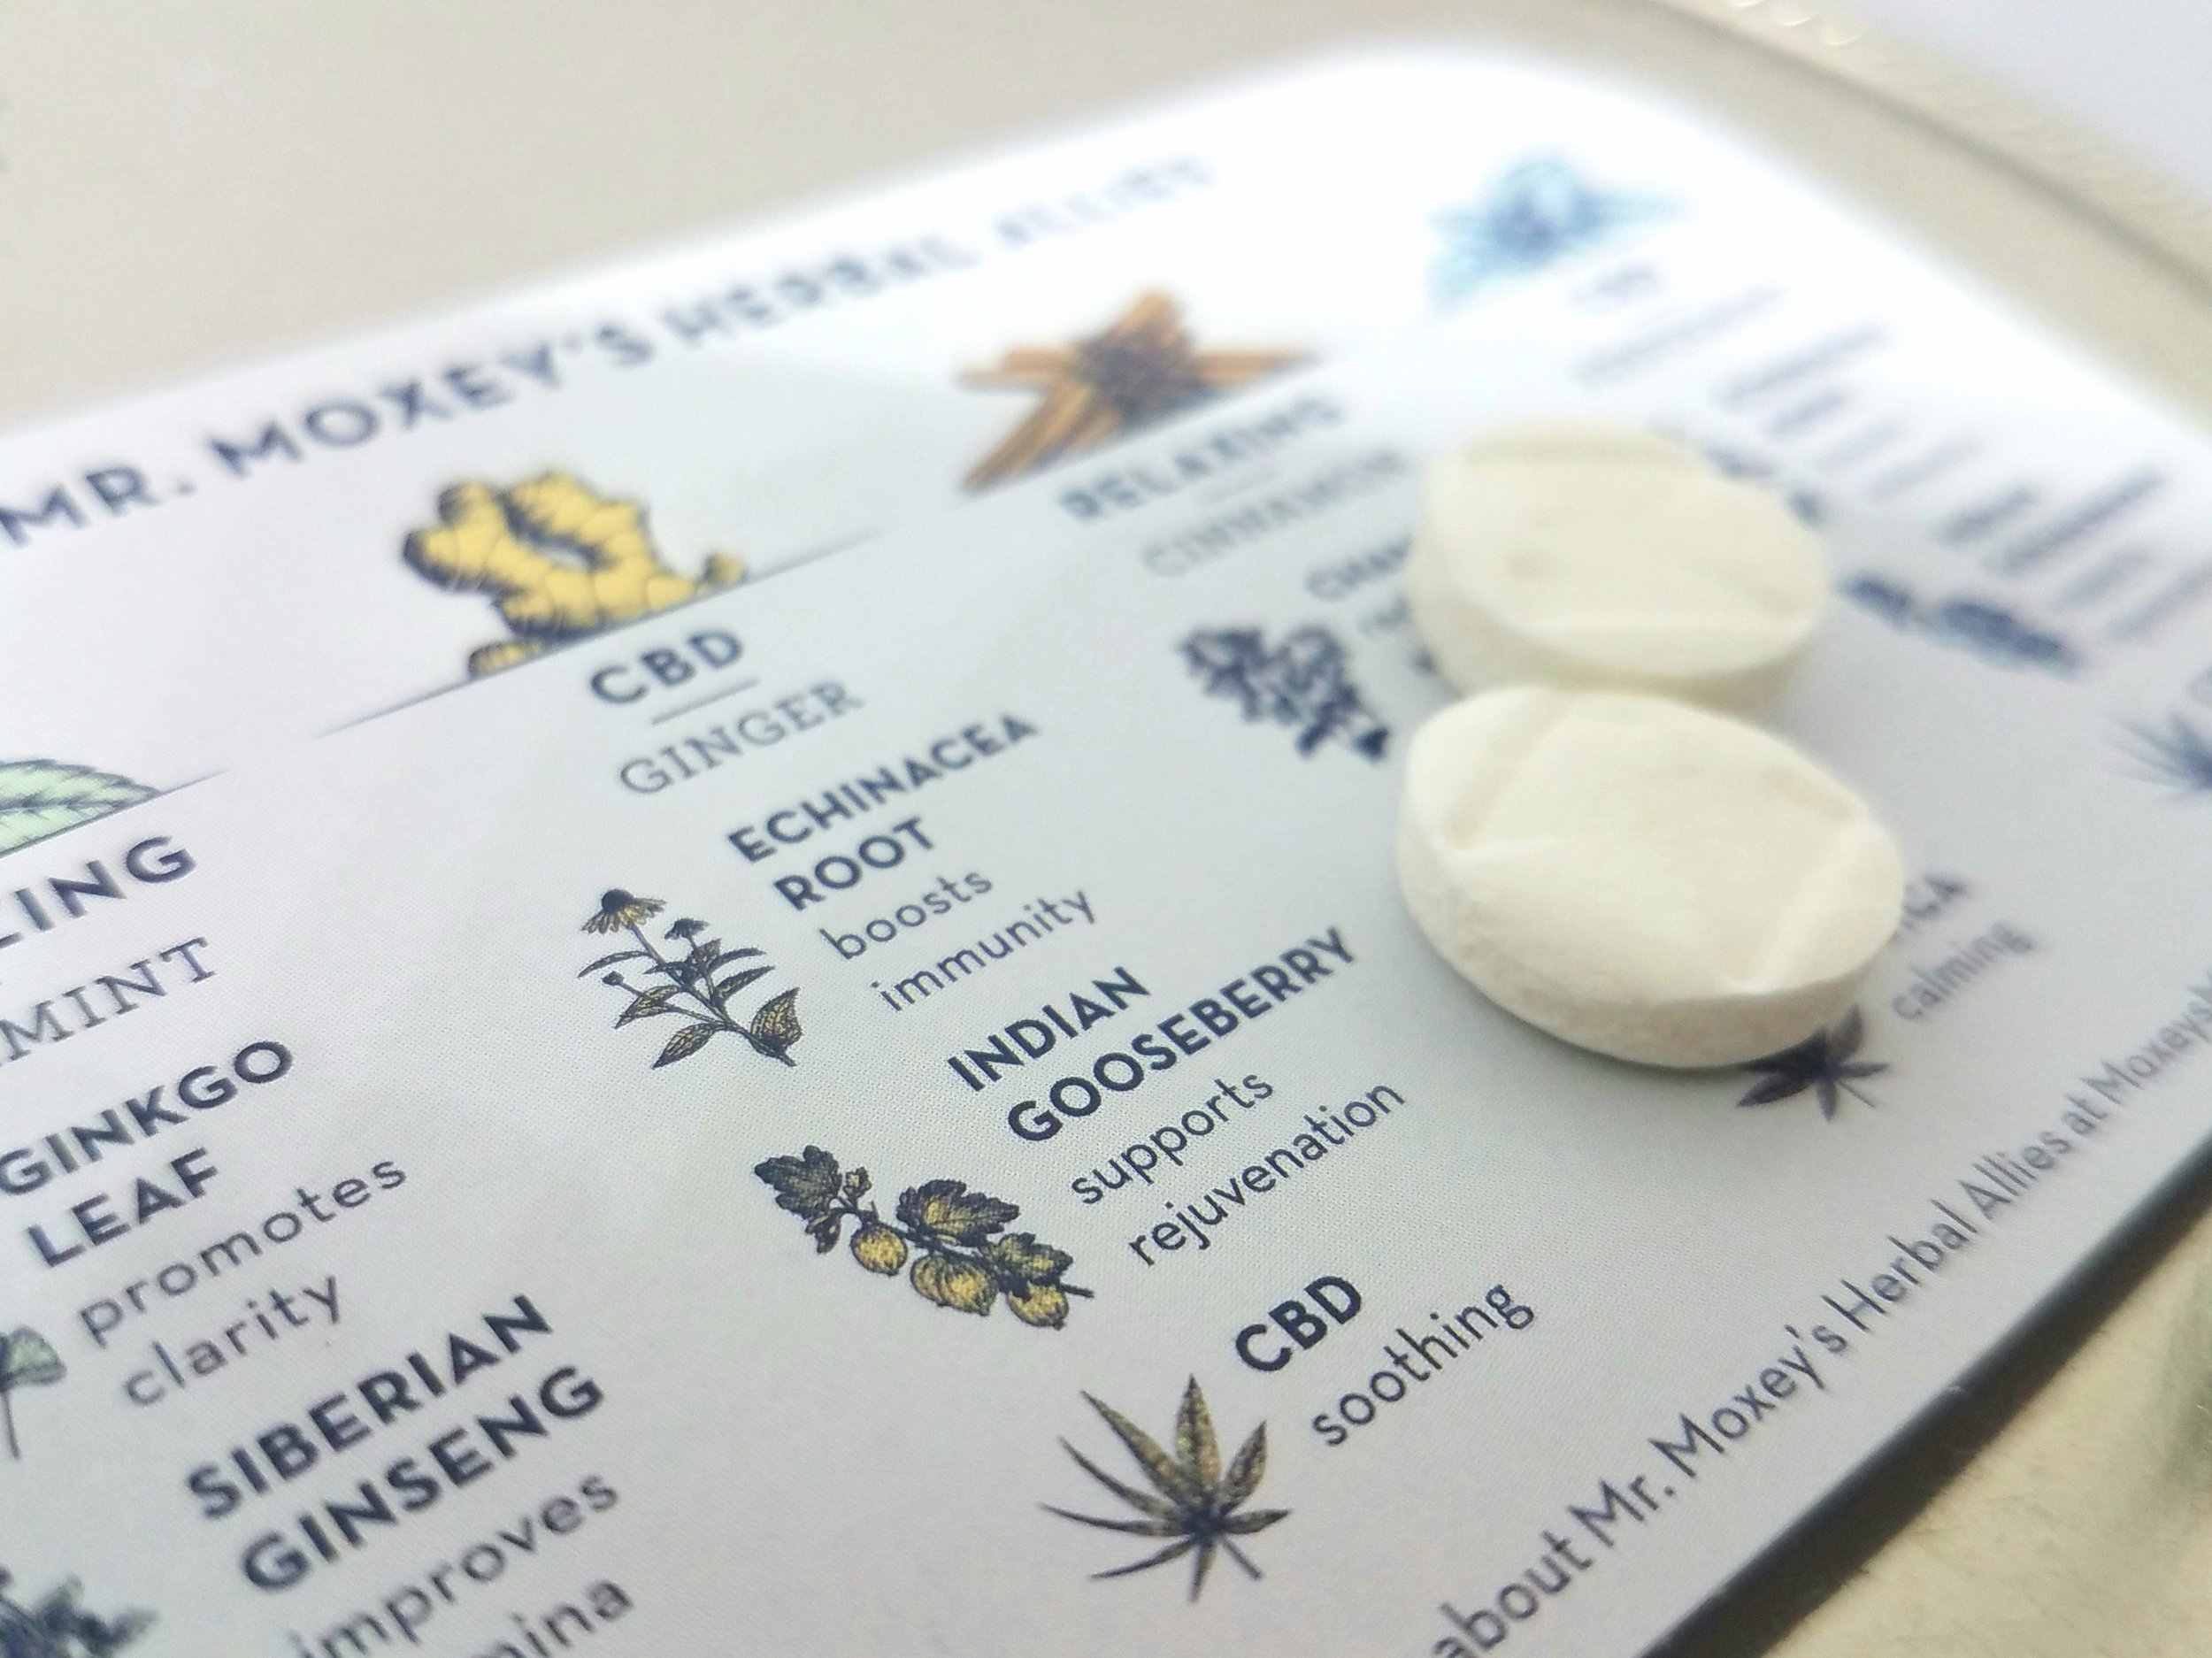 CBD Ginger Mints produced by Mr. Moxey's Mints